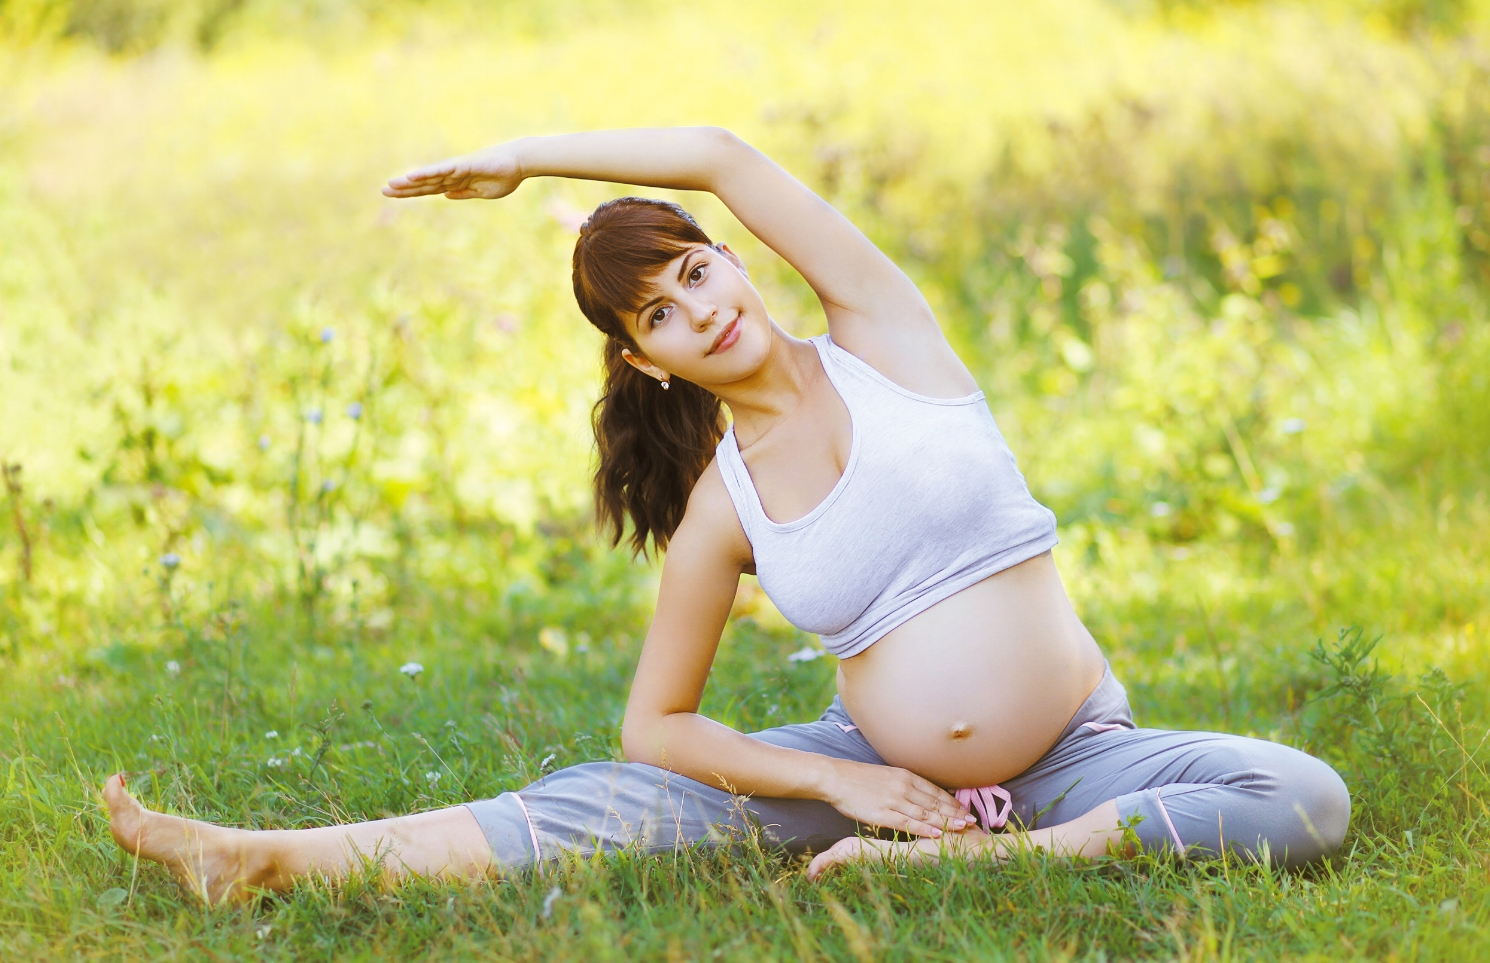 Getting Fit While Pregnant Is Possible